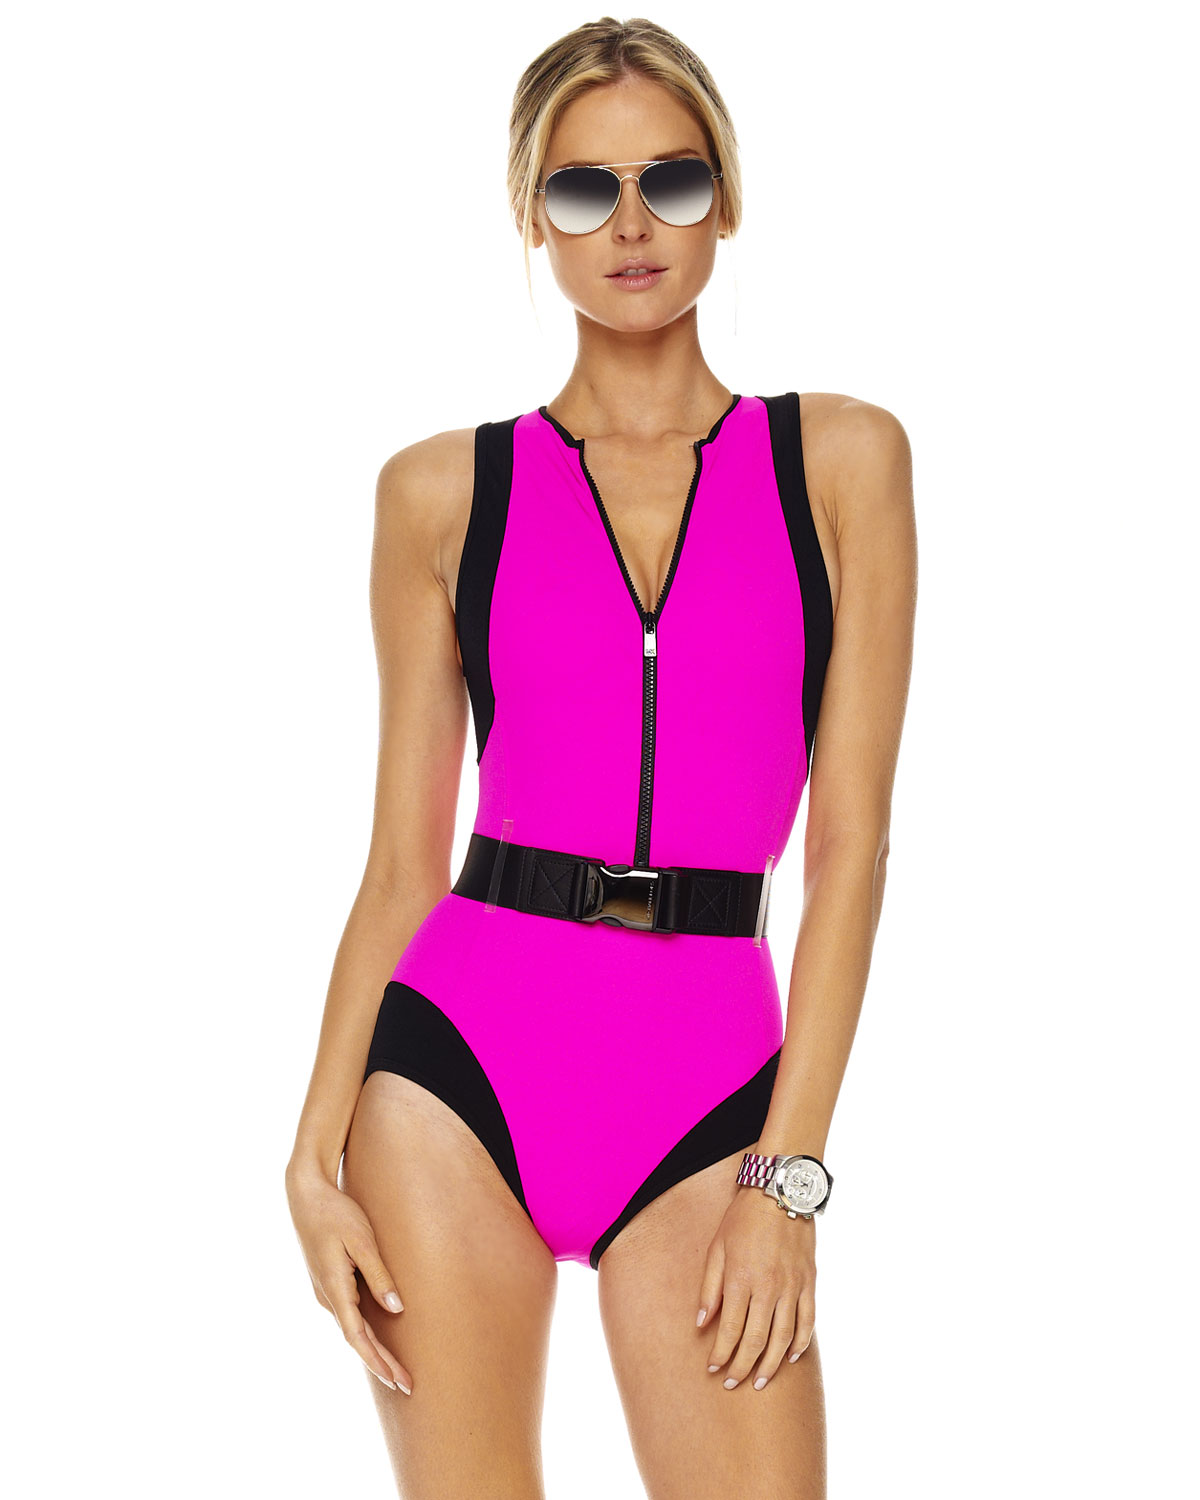 Find great deals on eBay for neon swimsuit. Shop with confidence.